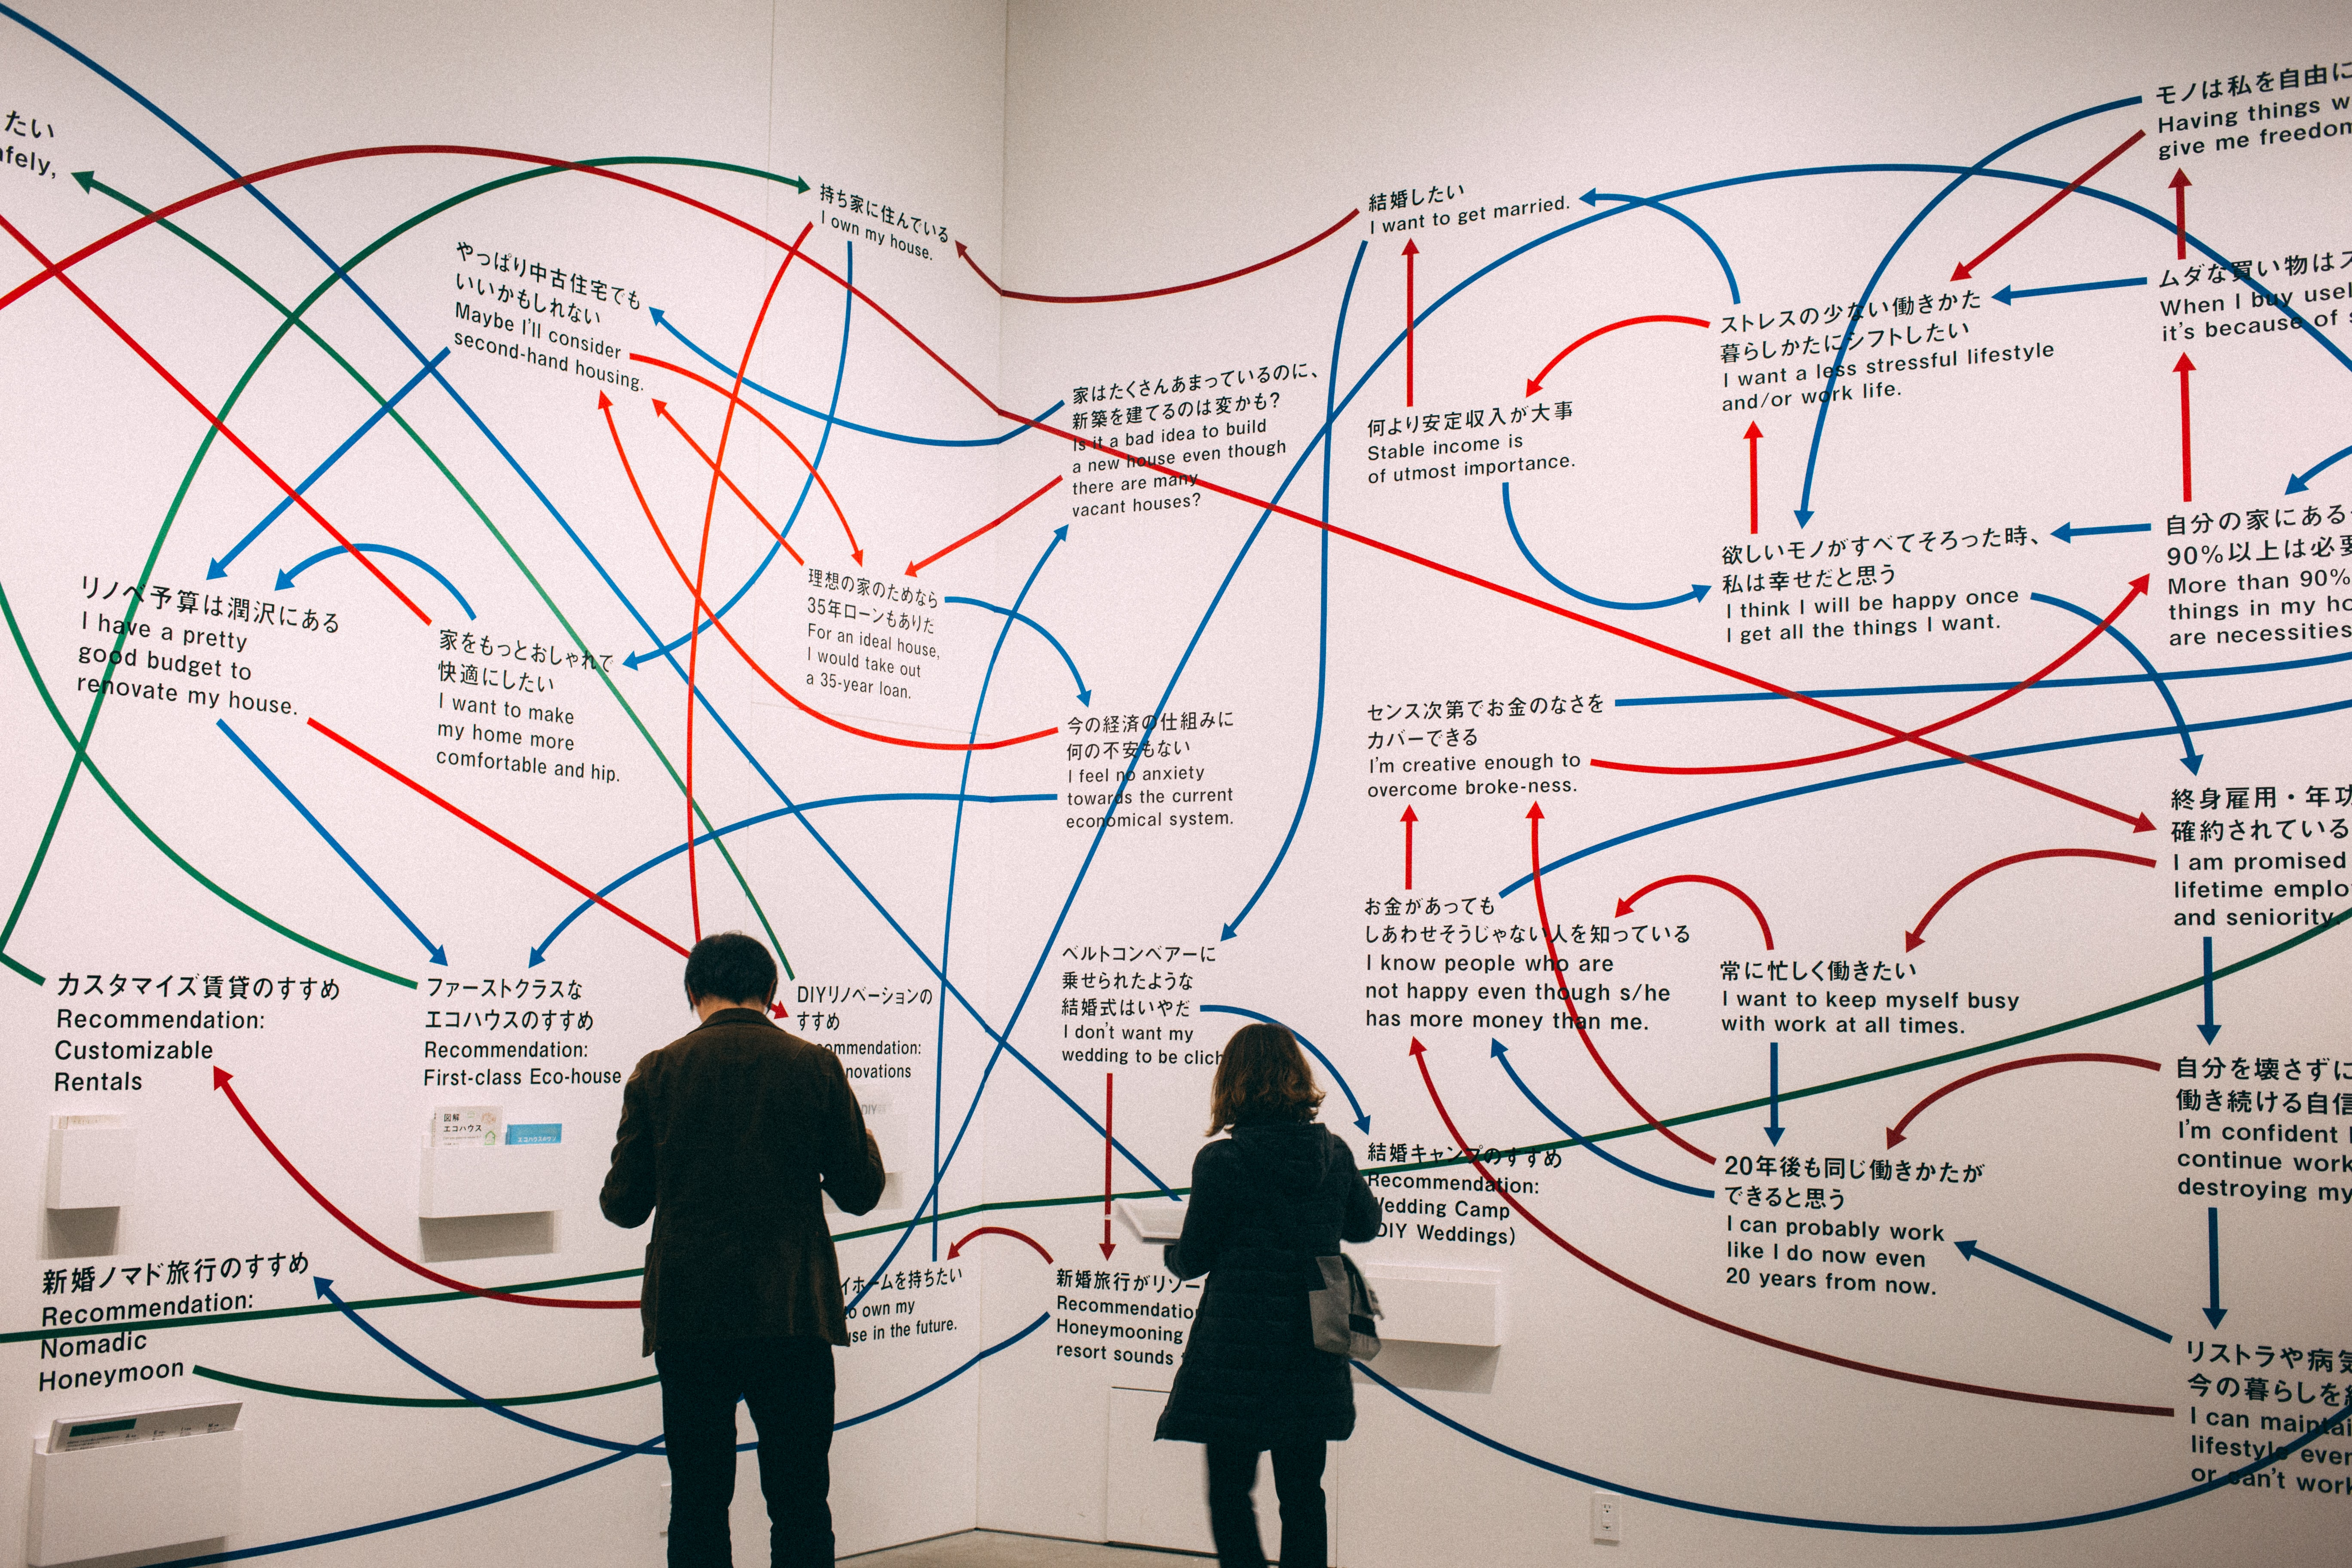 photo of a mind map on a wall